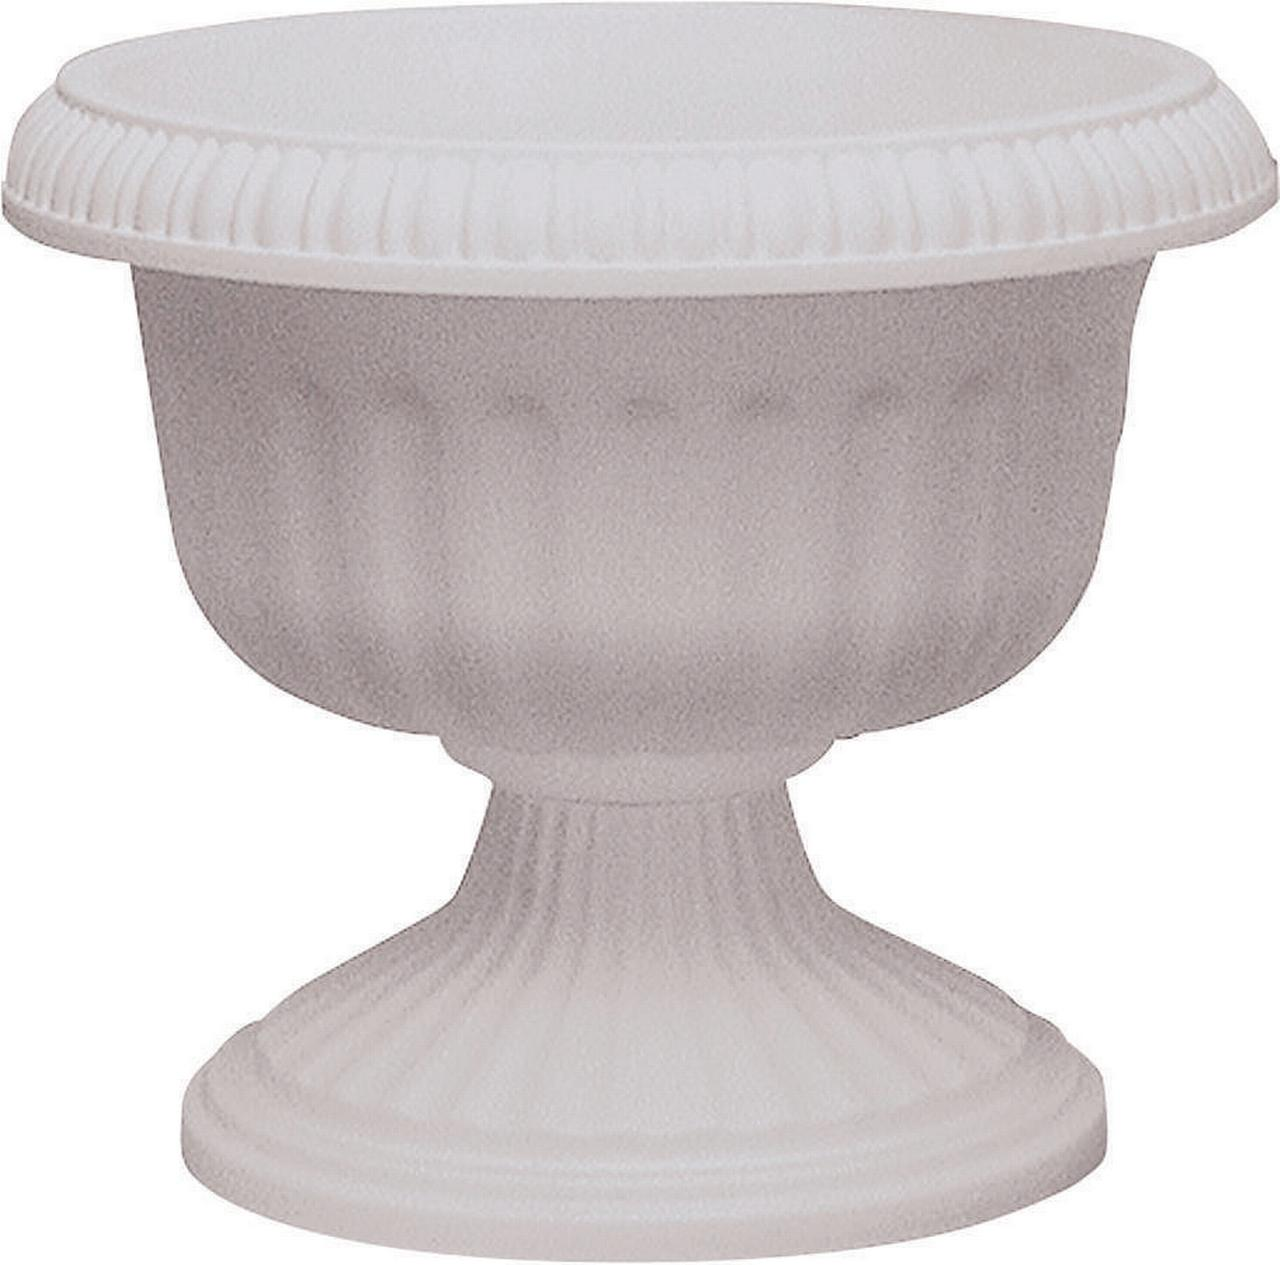 Southern Patio, Dynamic Design UR1212WH Grecian Style Urn Planter, 12 in Dia x 11.88 in L,... by AMES/TRUE TEMPER INC